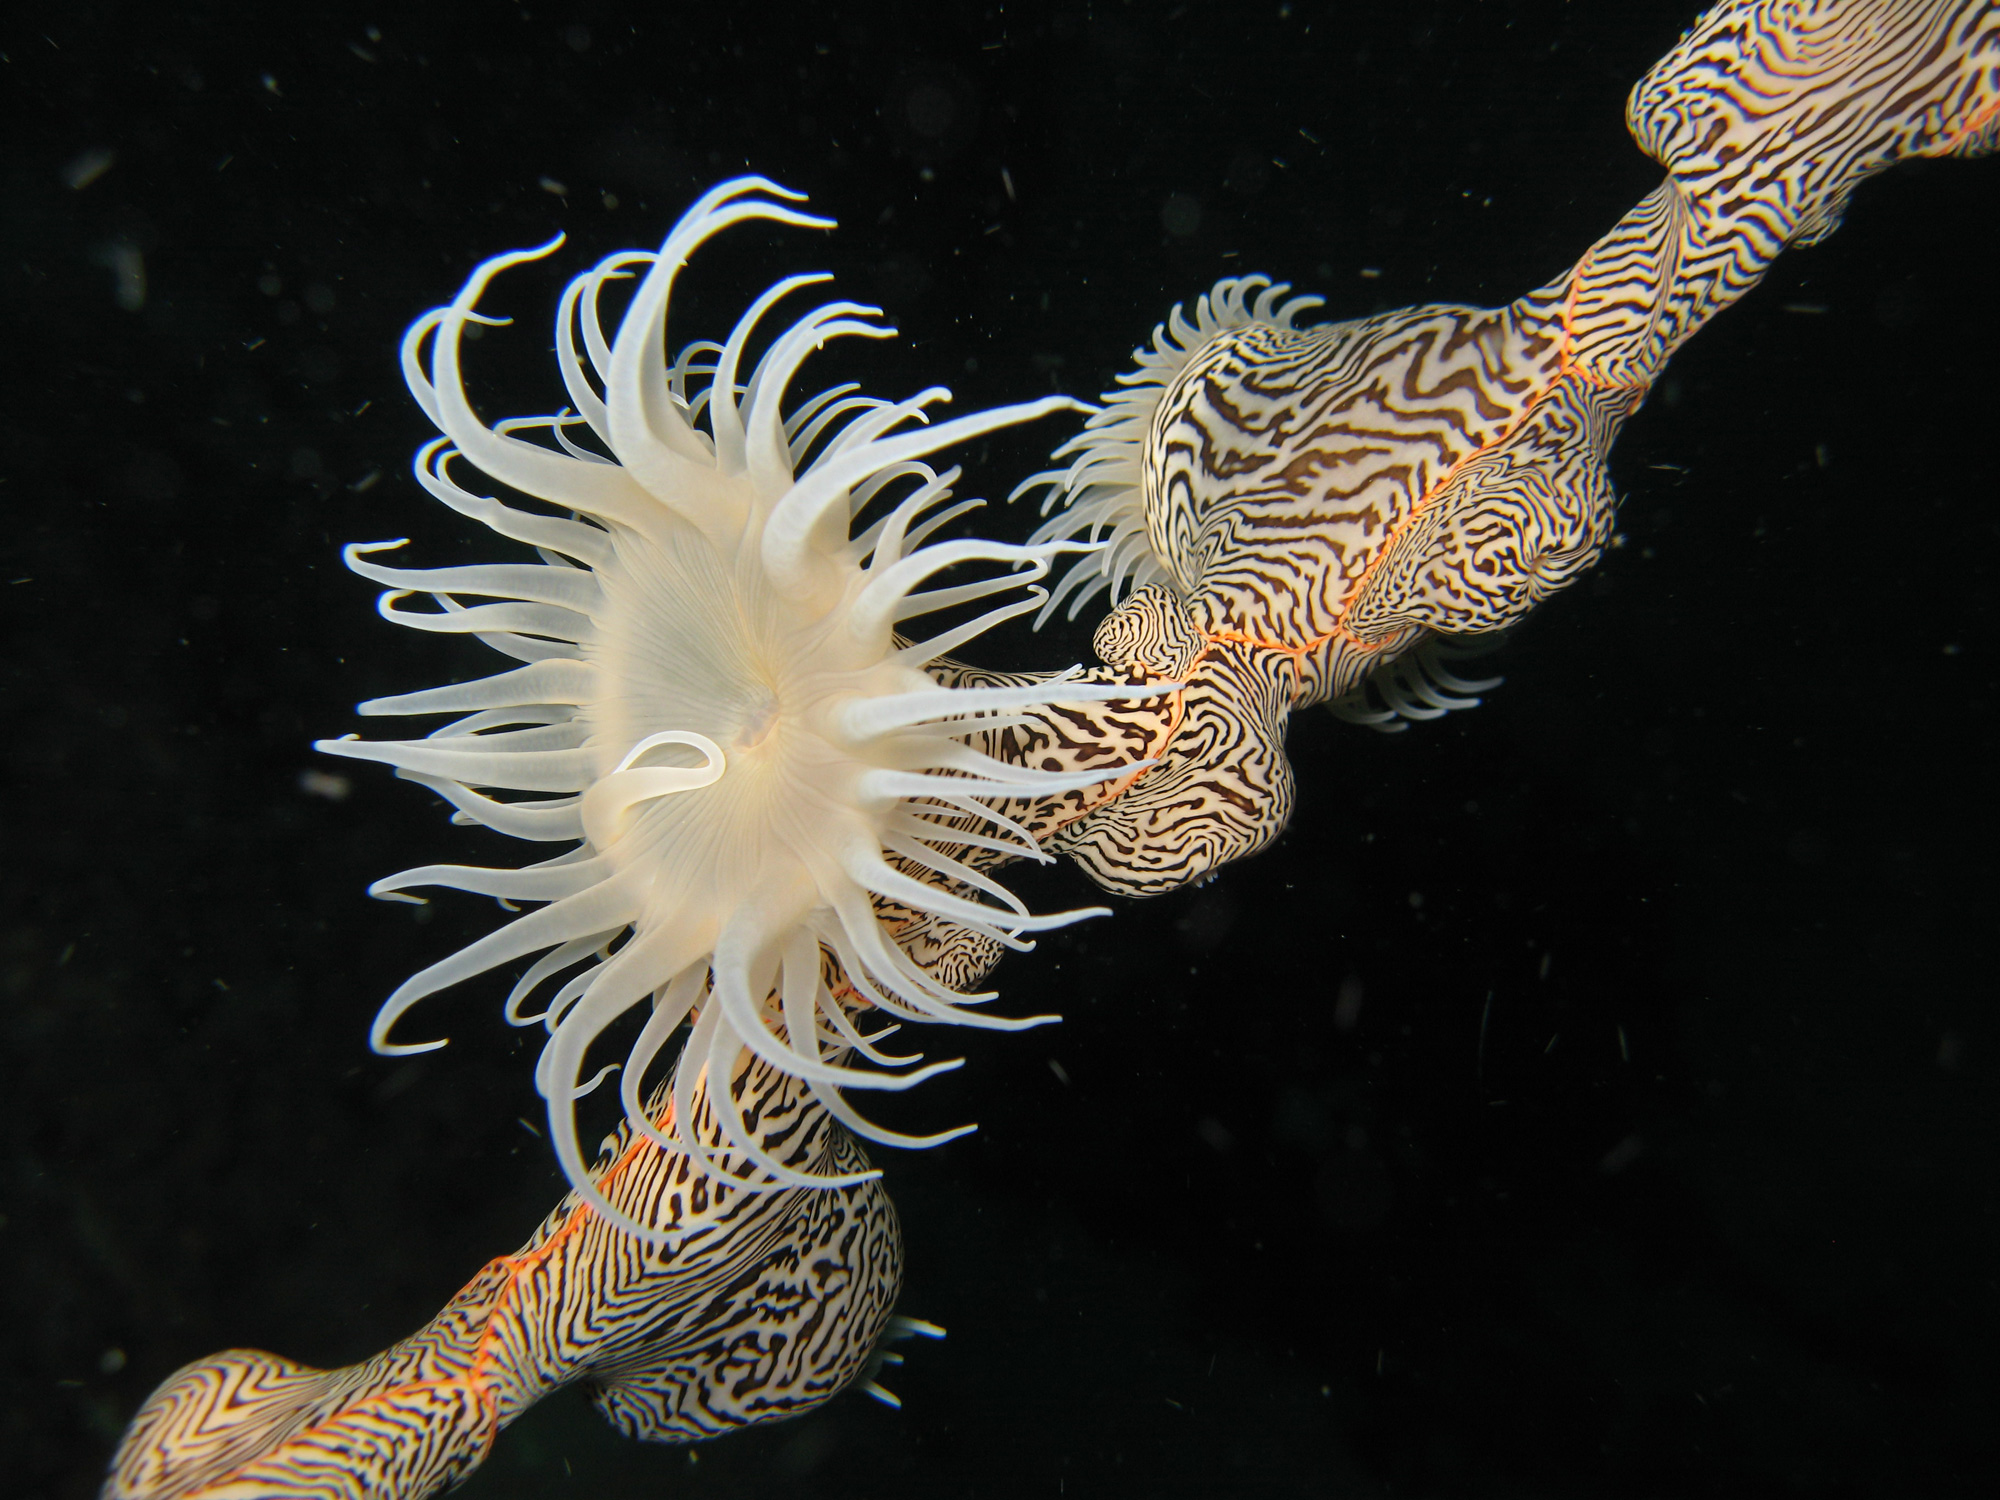 Zebra Anemone, photo: Greg McDonald (August 2018)